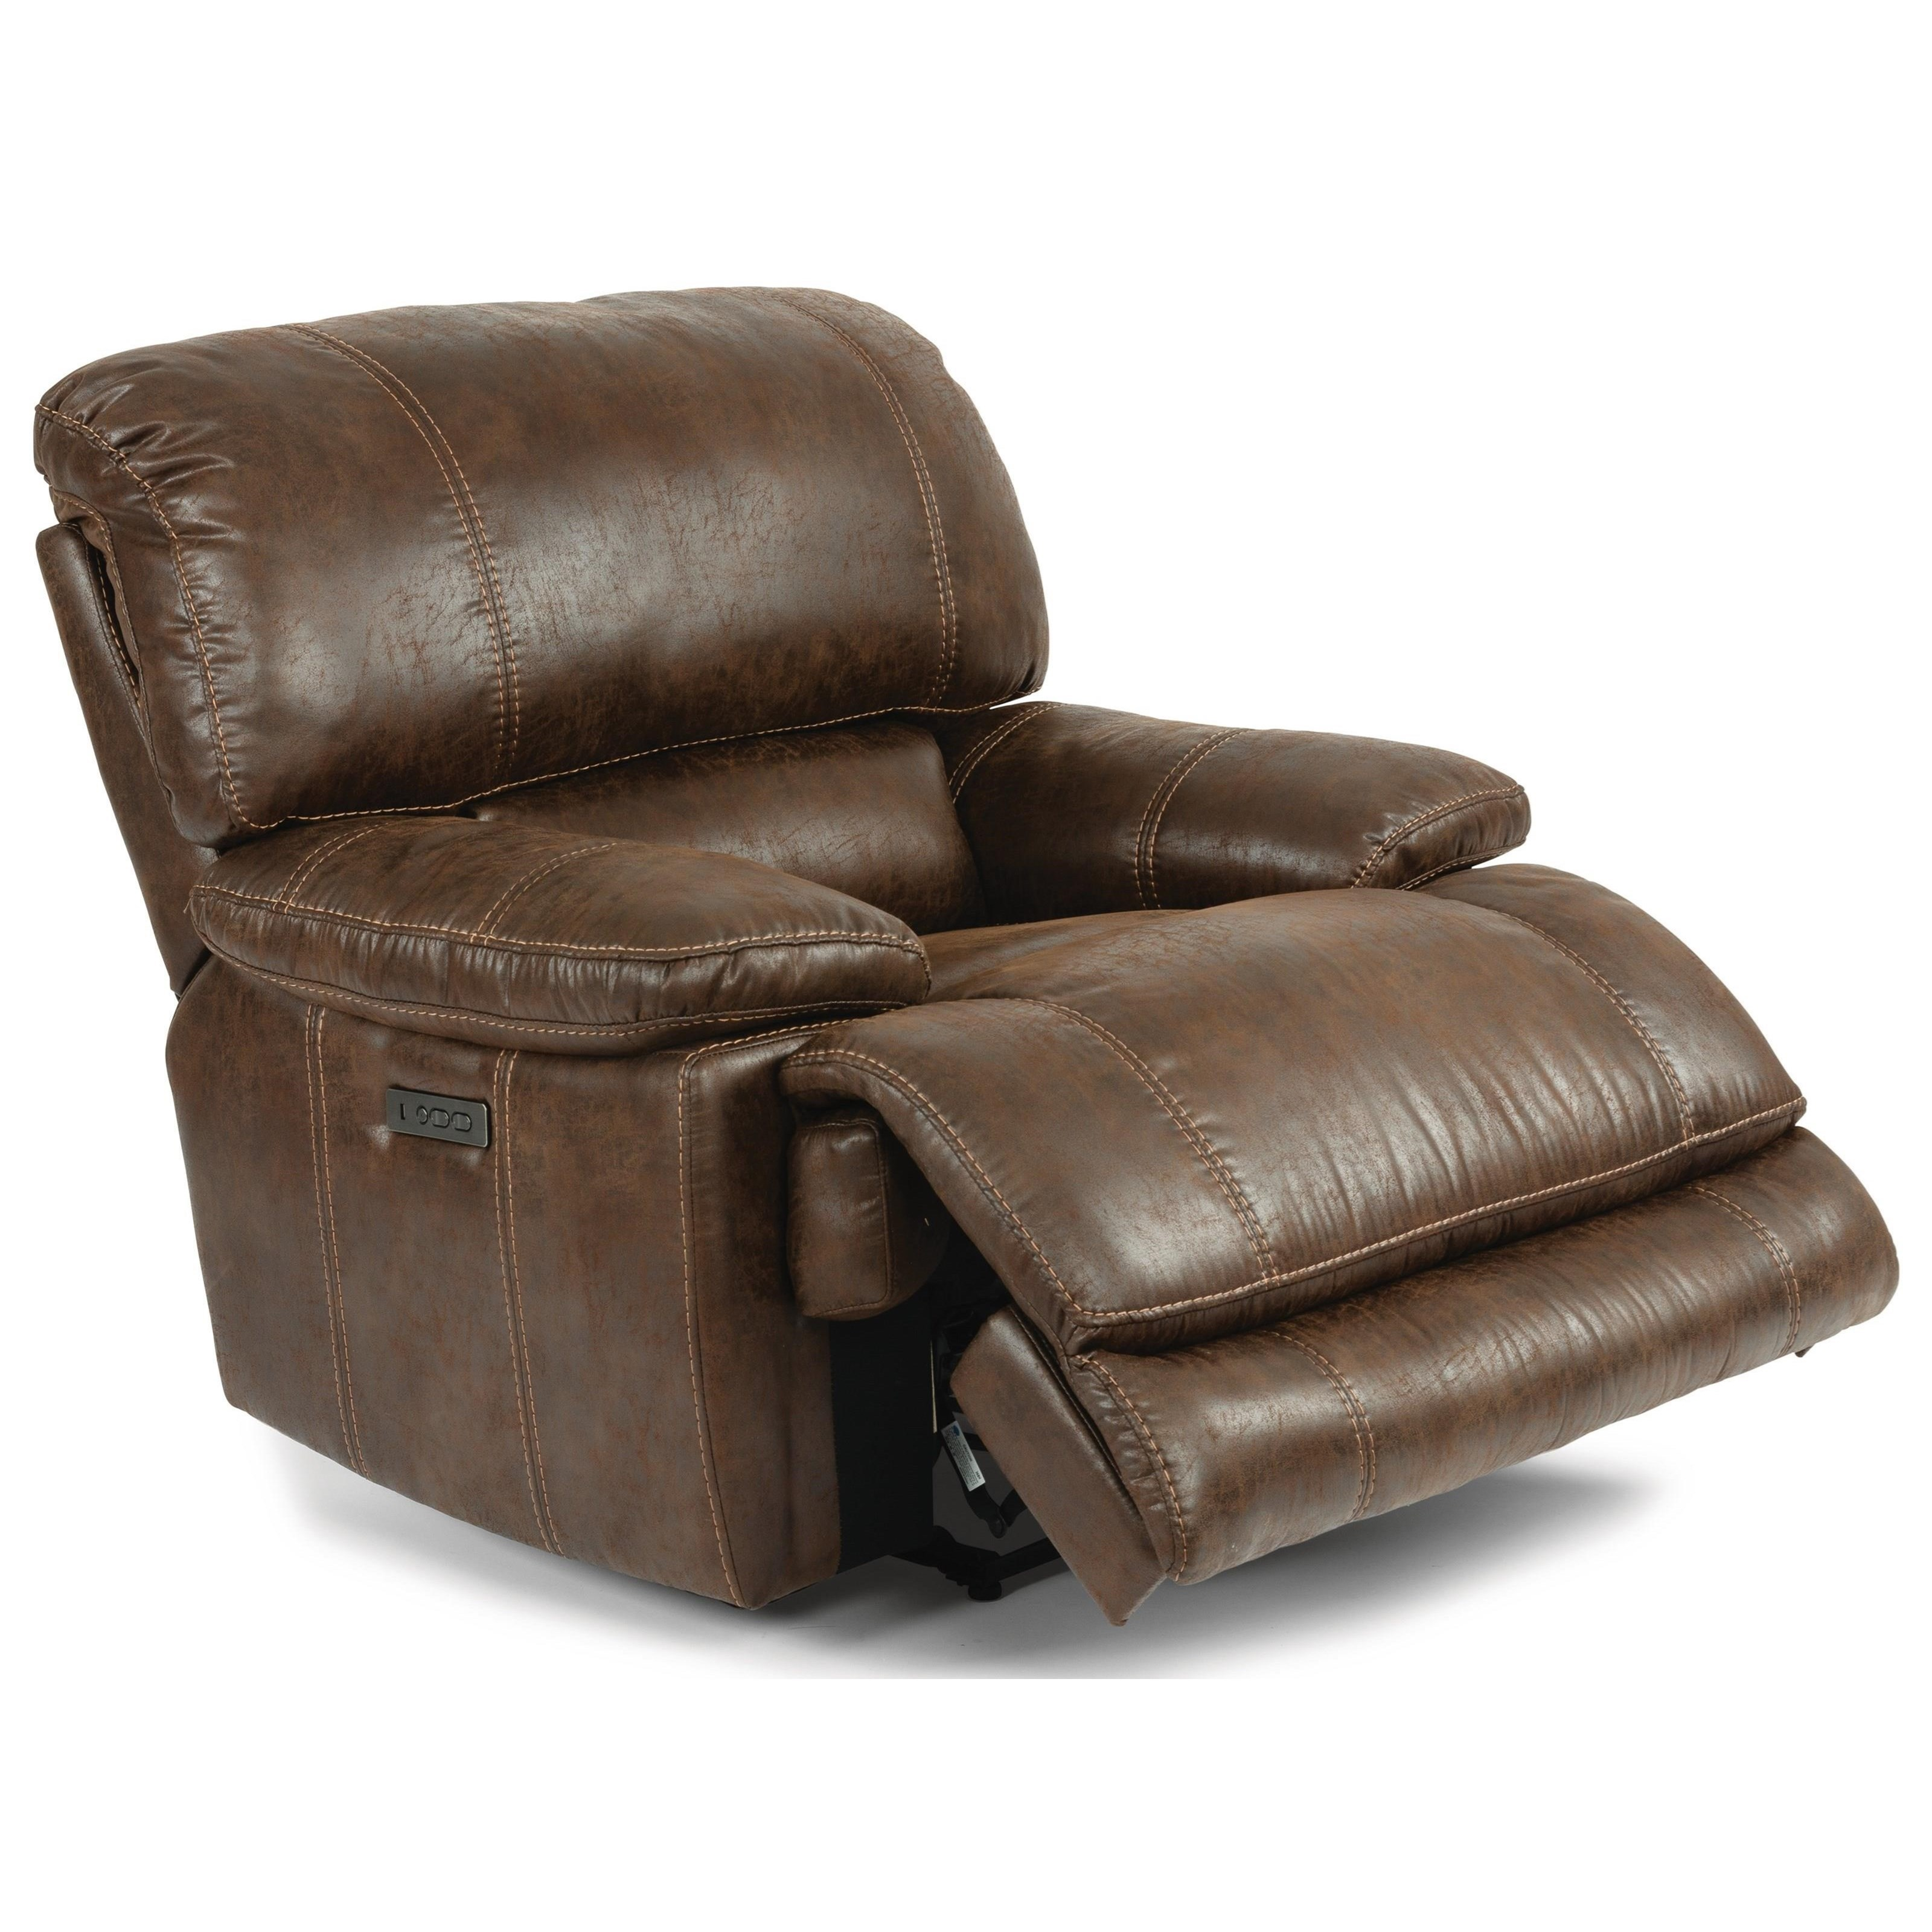 Admirable Latitudes Thomas Power Recliner W Pwr Headrest Alphanode Cool Chair Designs And Ideas Alphanodeonline